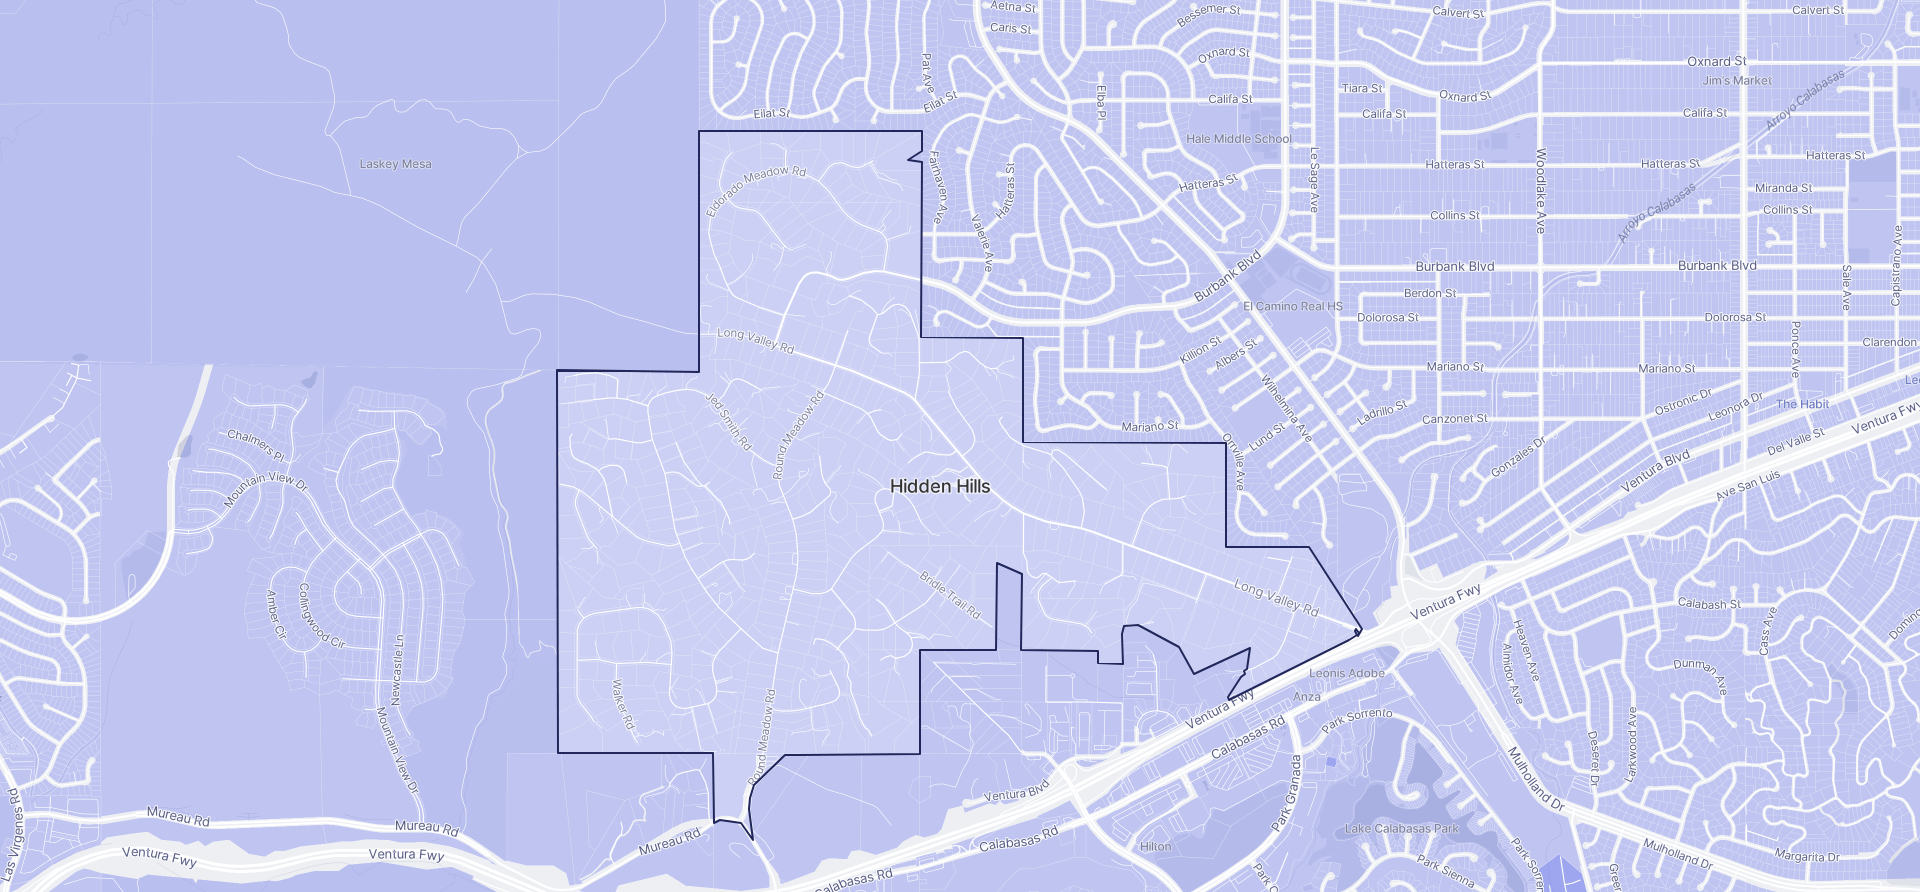 Image of Hidden Hills boundaries on a map.